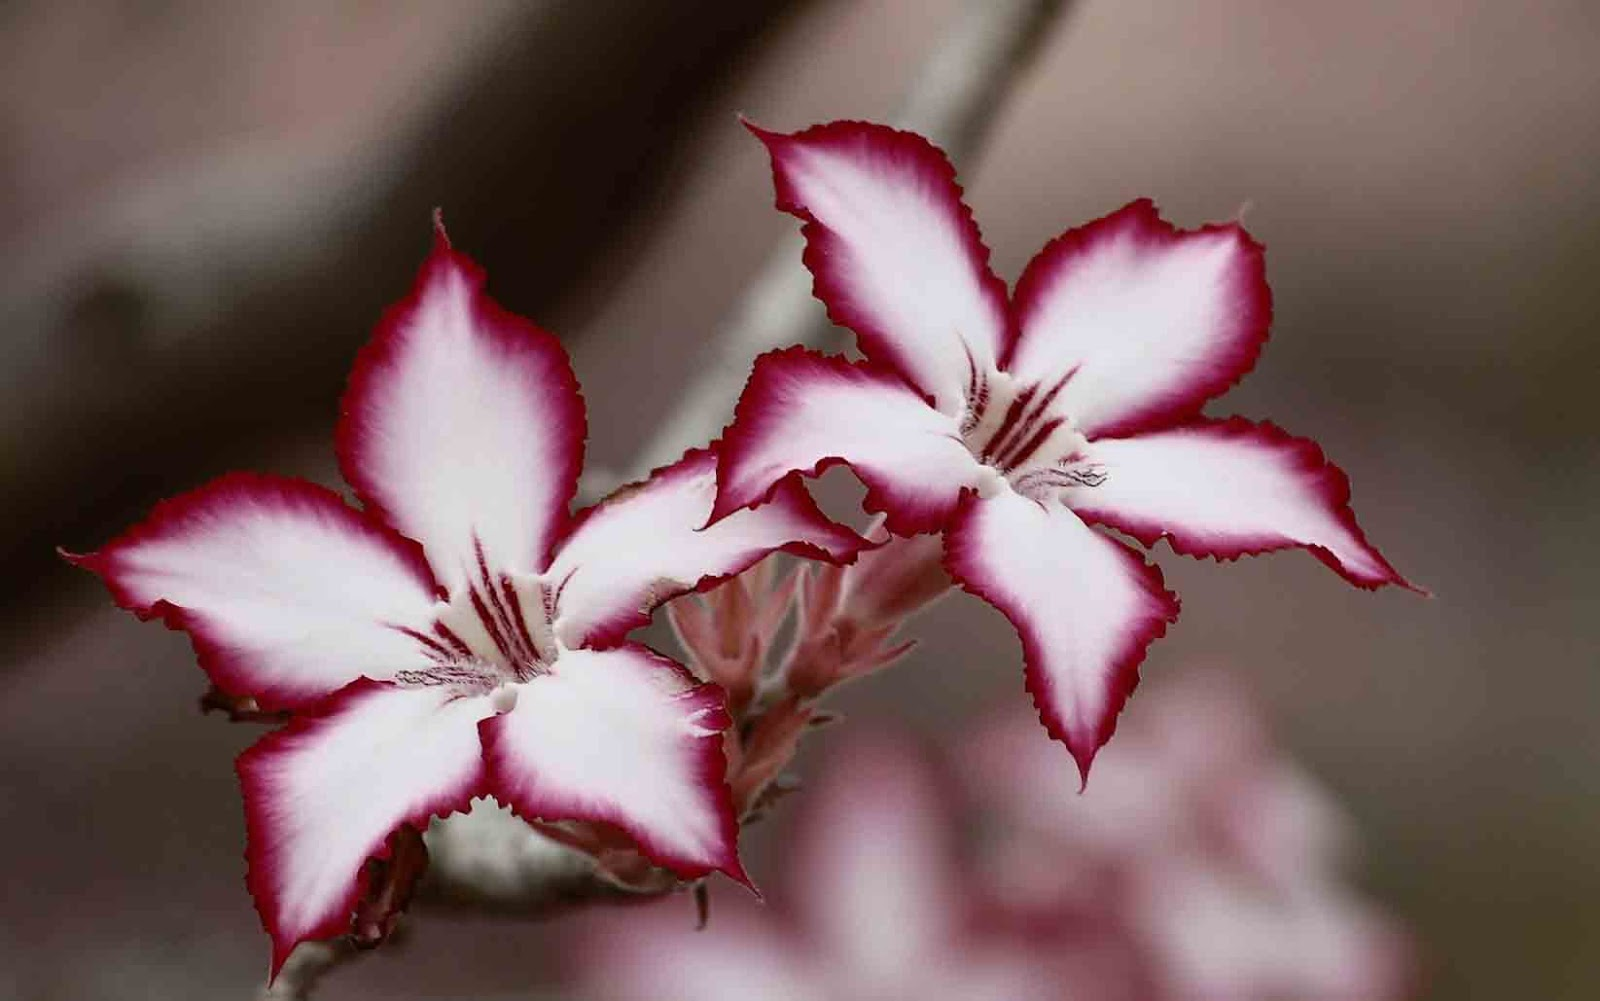 flower images for whatsapp profile download